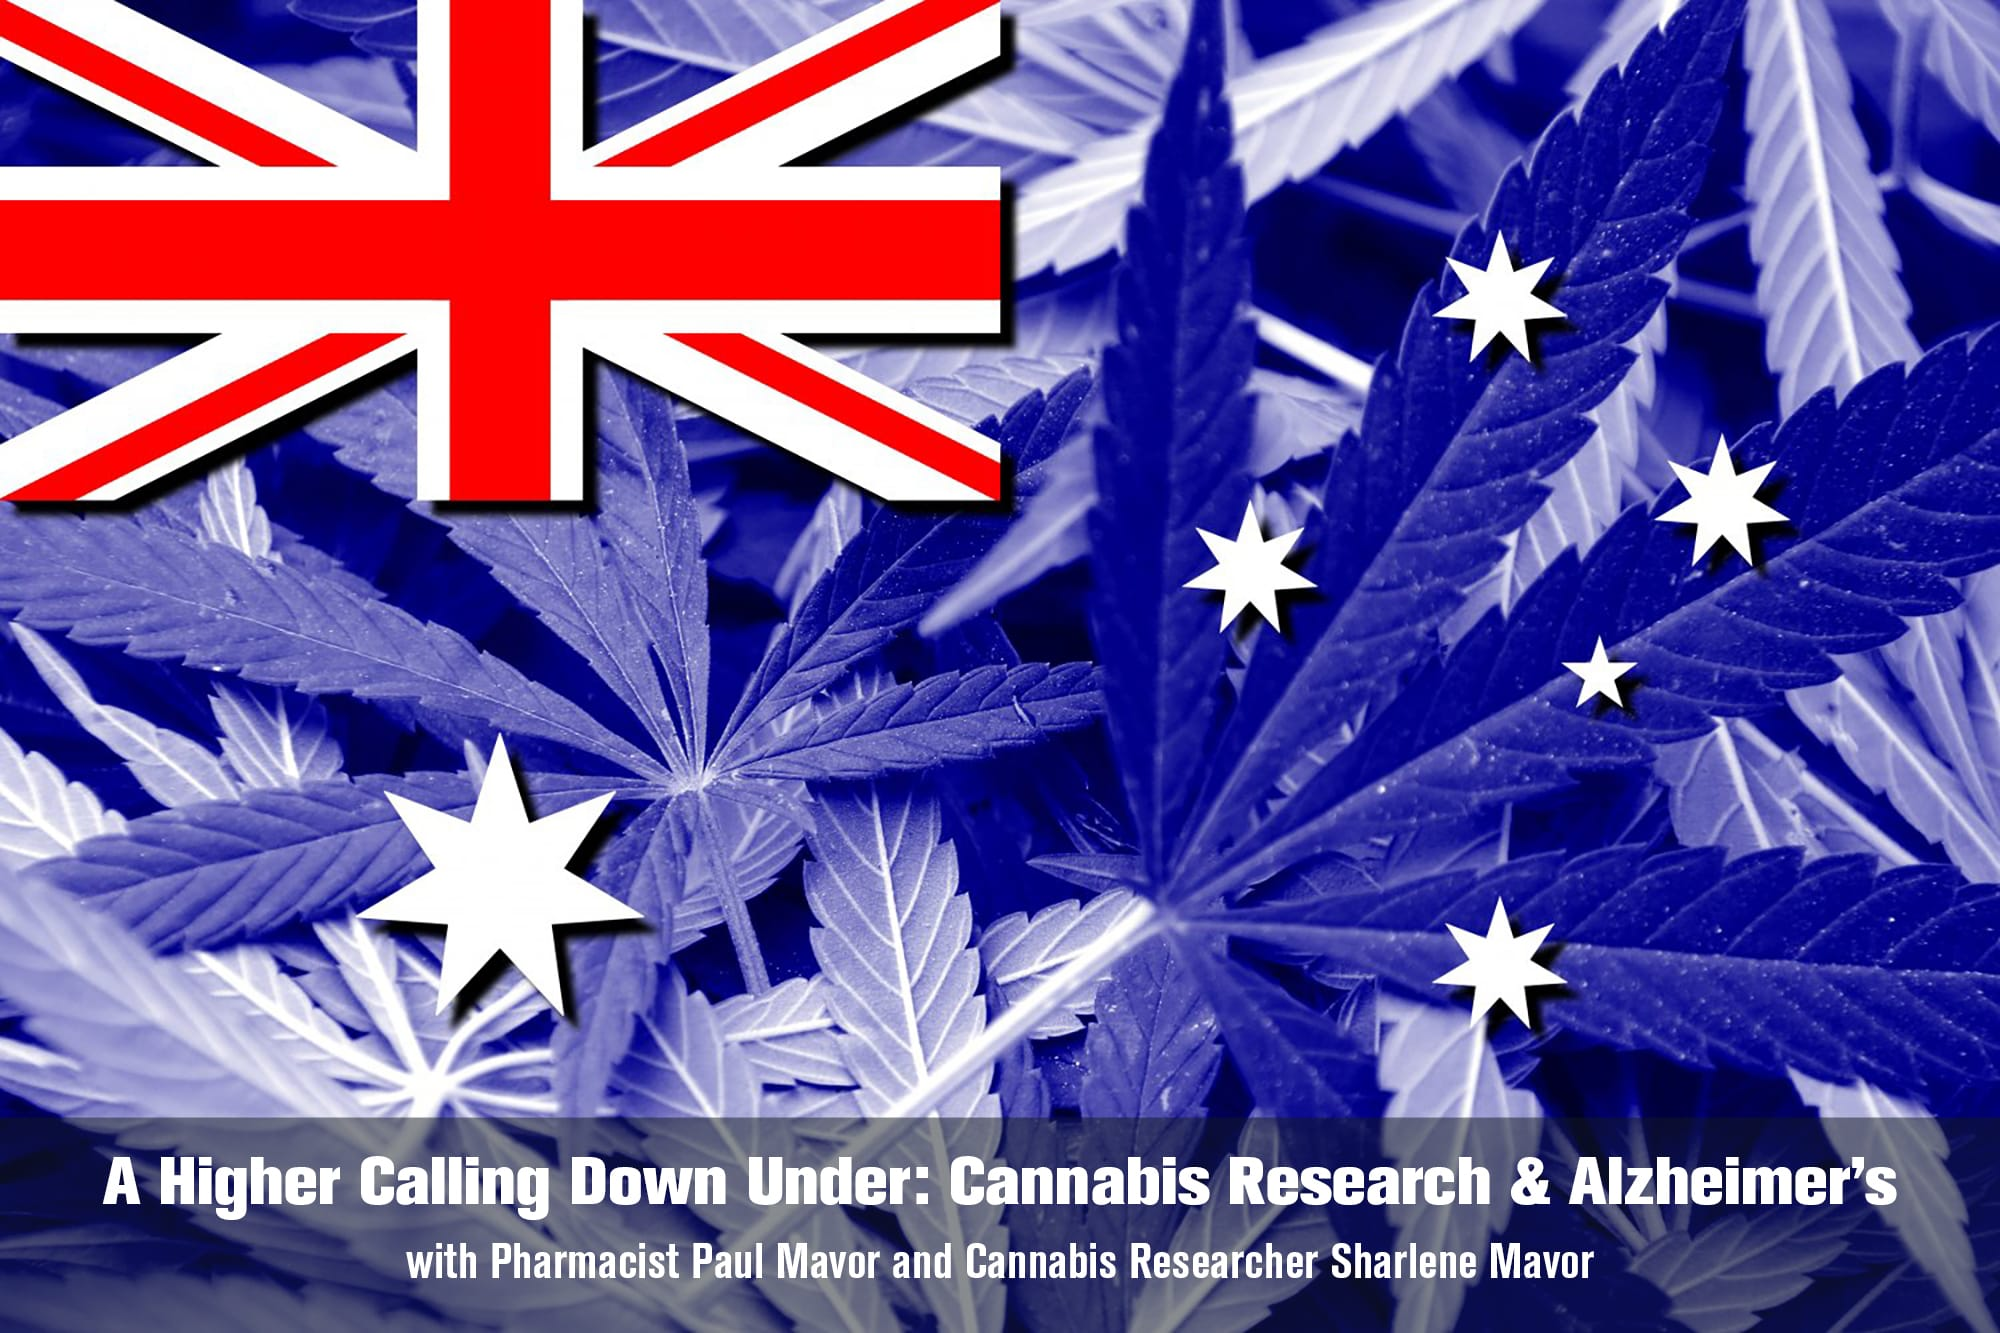 Having legalized medical use of cannabis at the federal level only a year ago, Australia's domestic market is still new but advantages are light years ahead of the U.S.